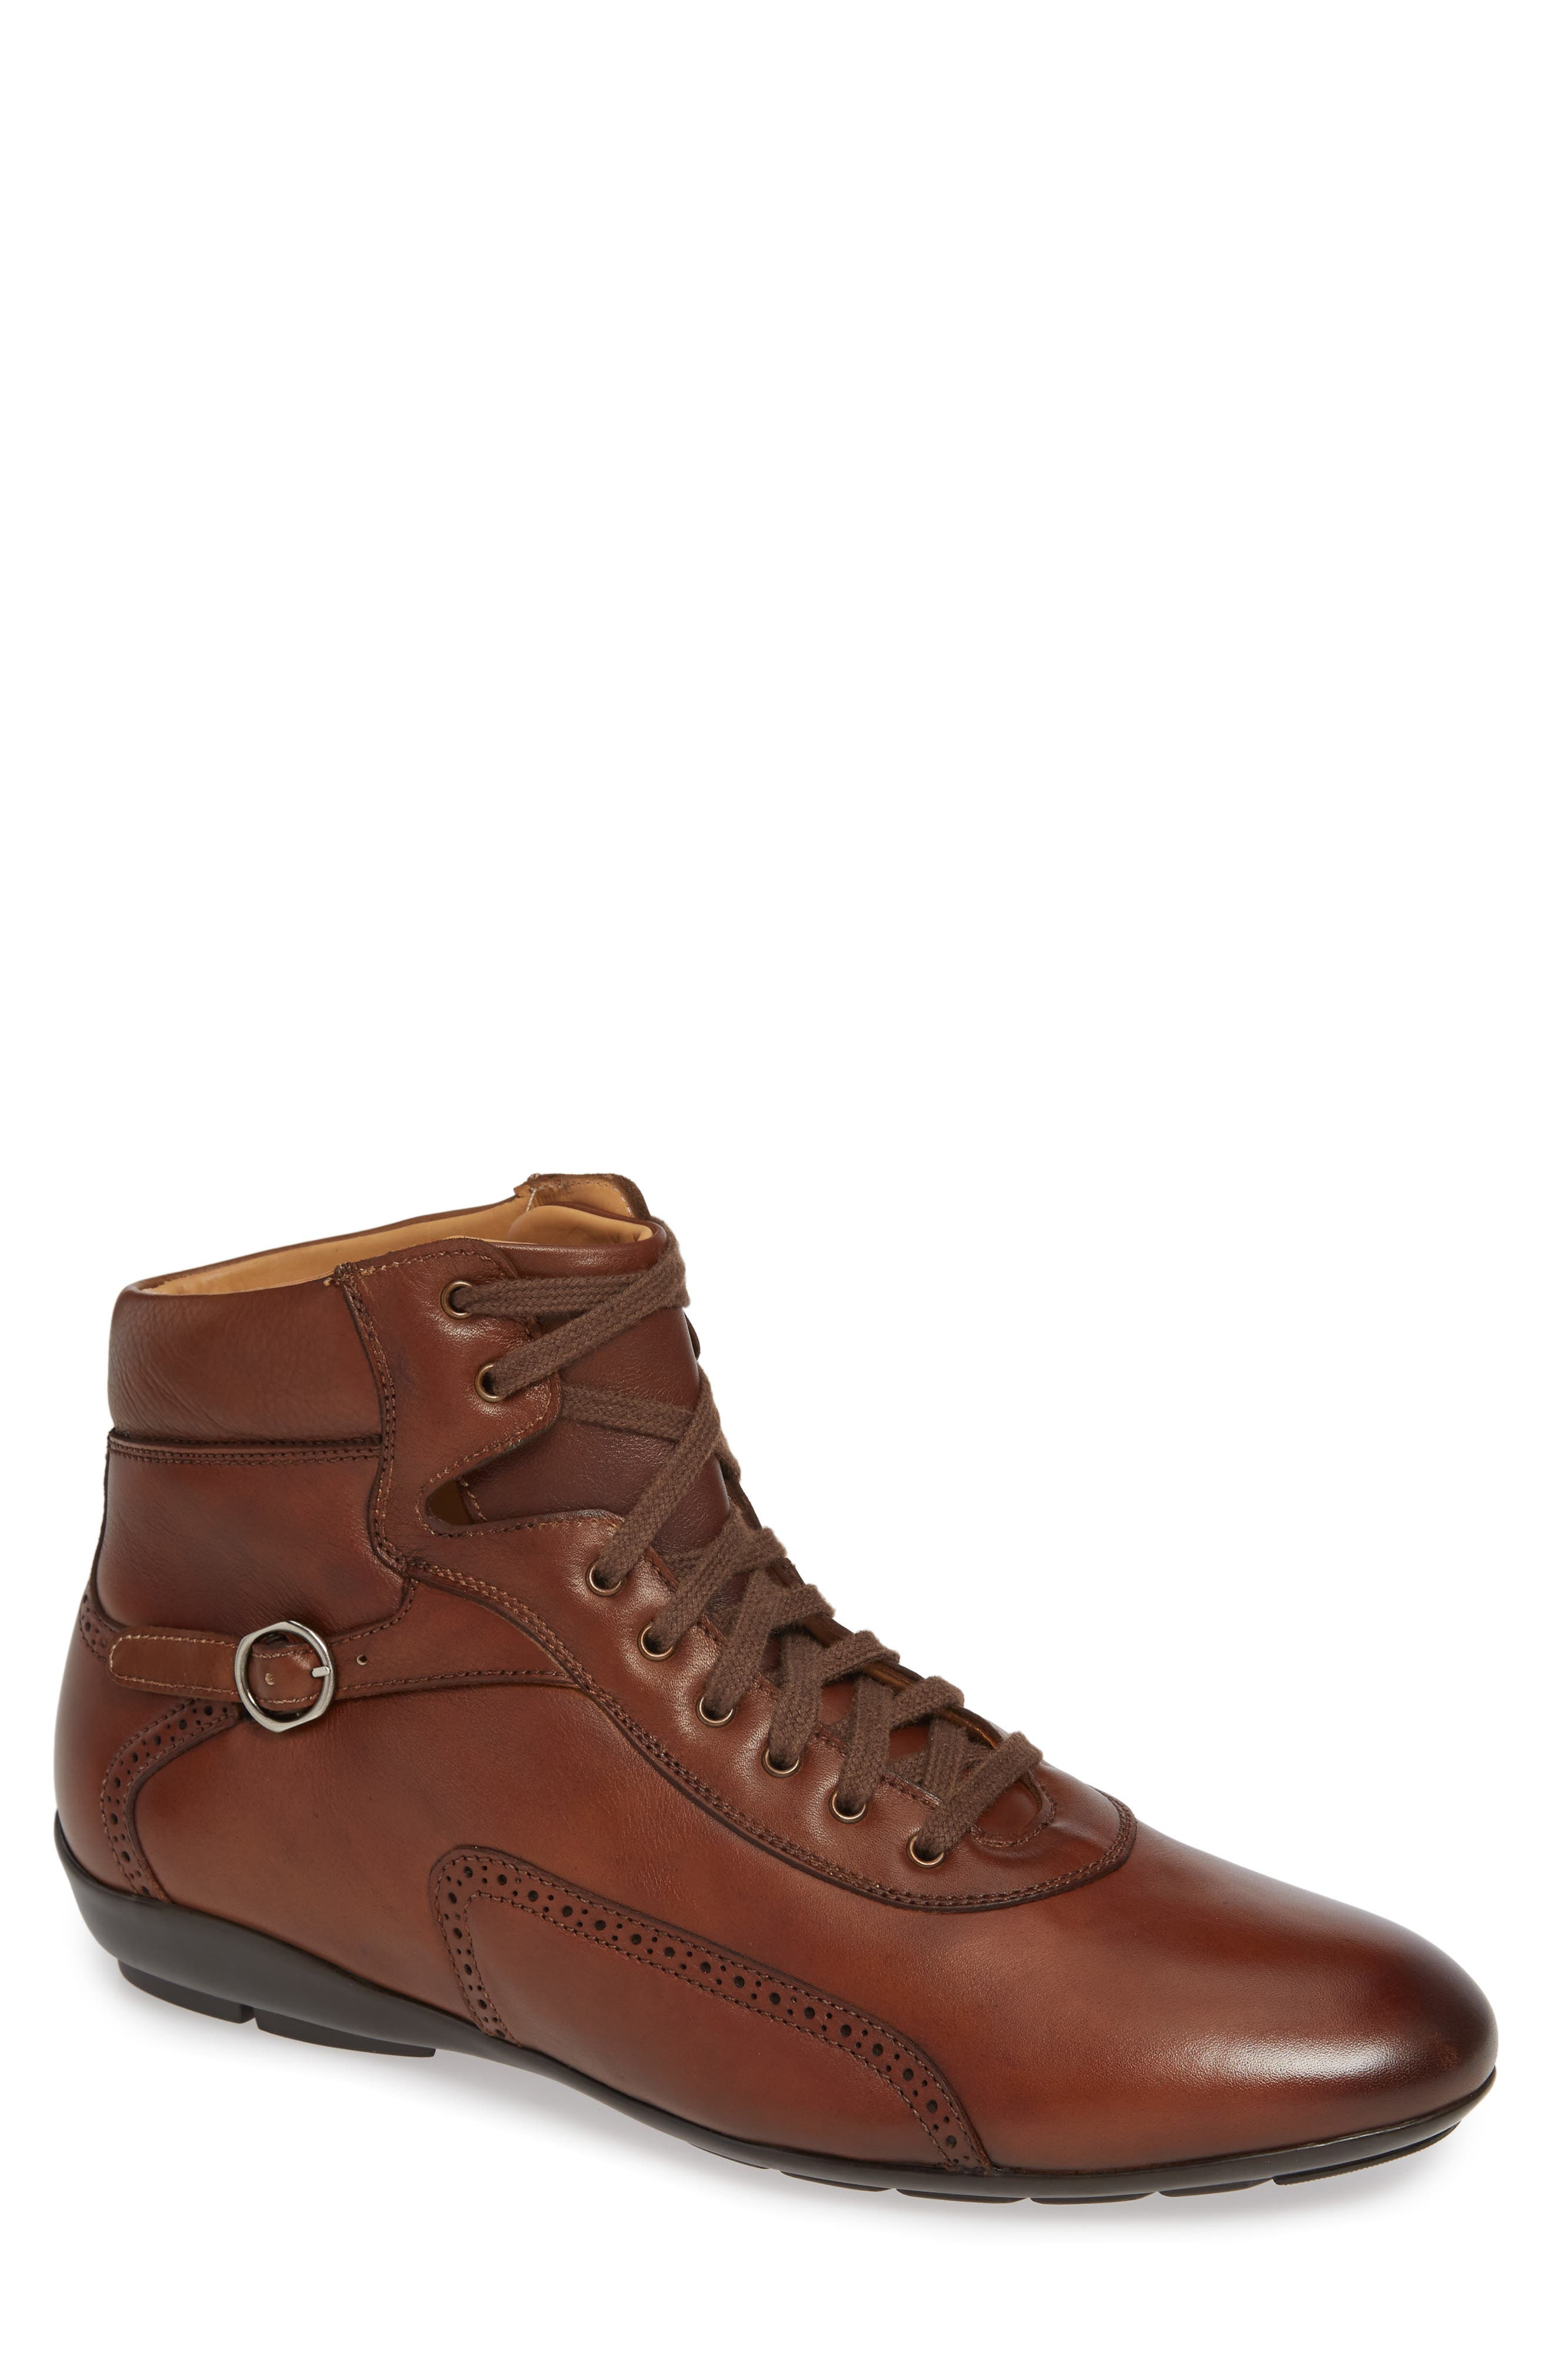 Pasquale High Top Sneaker in Cognac Leather